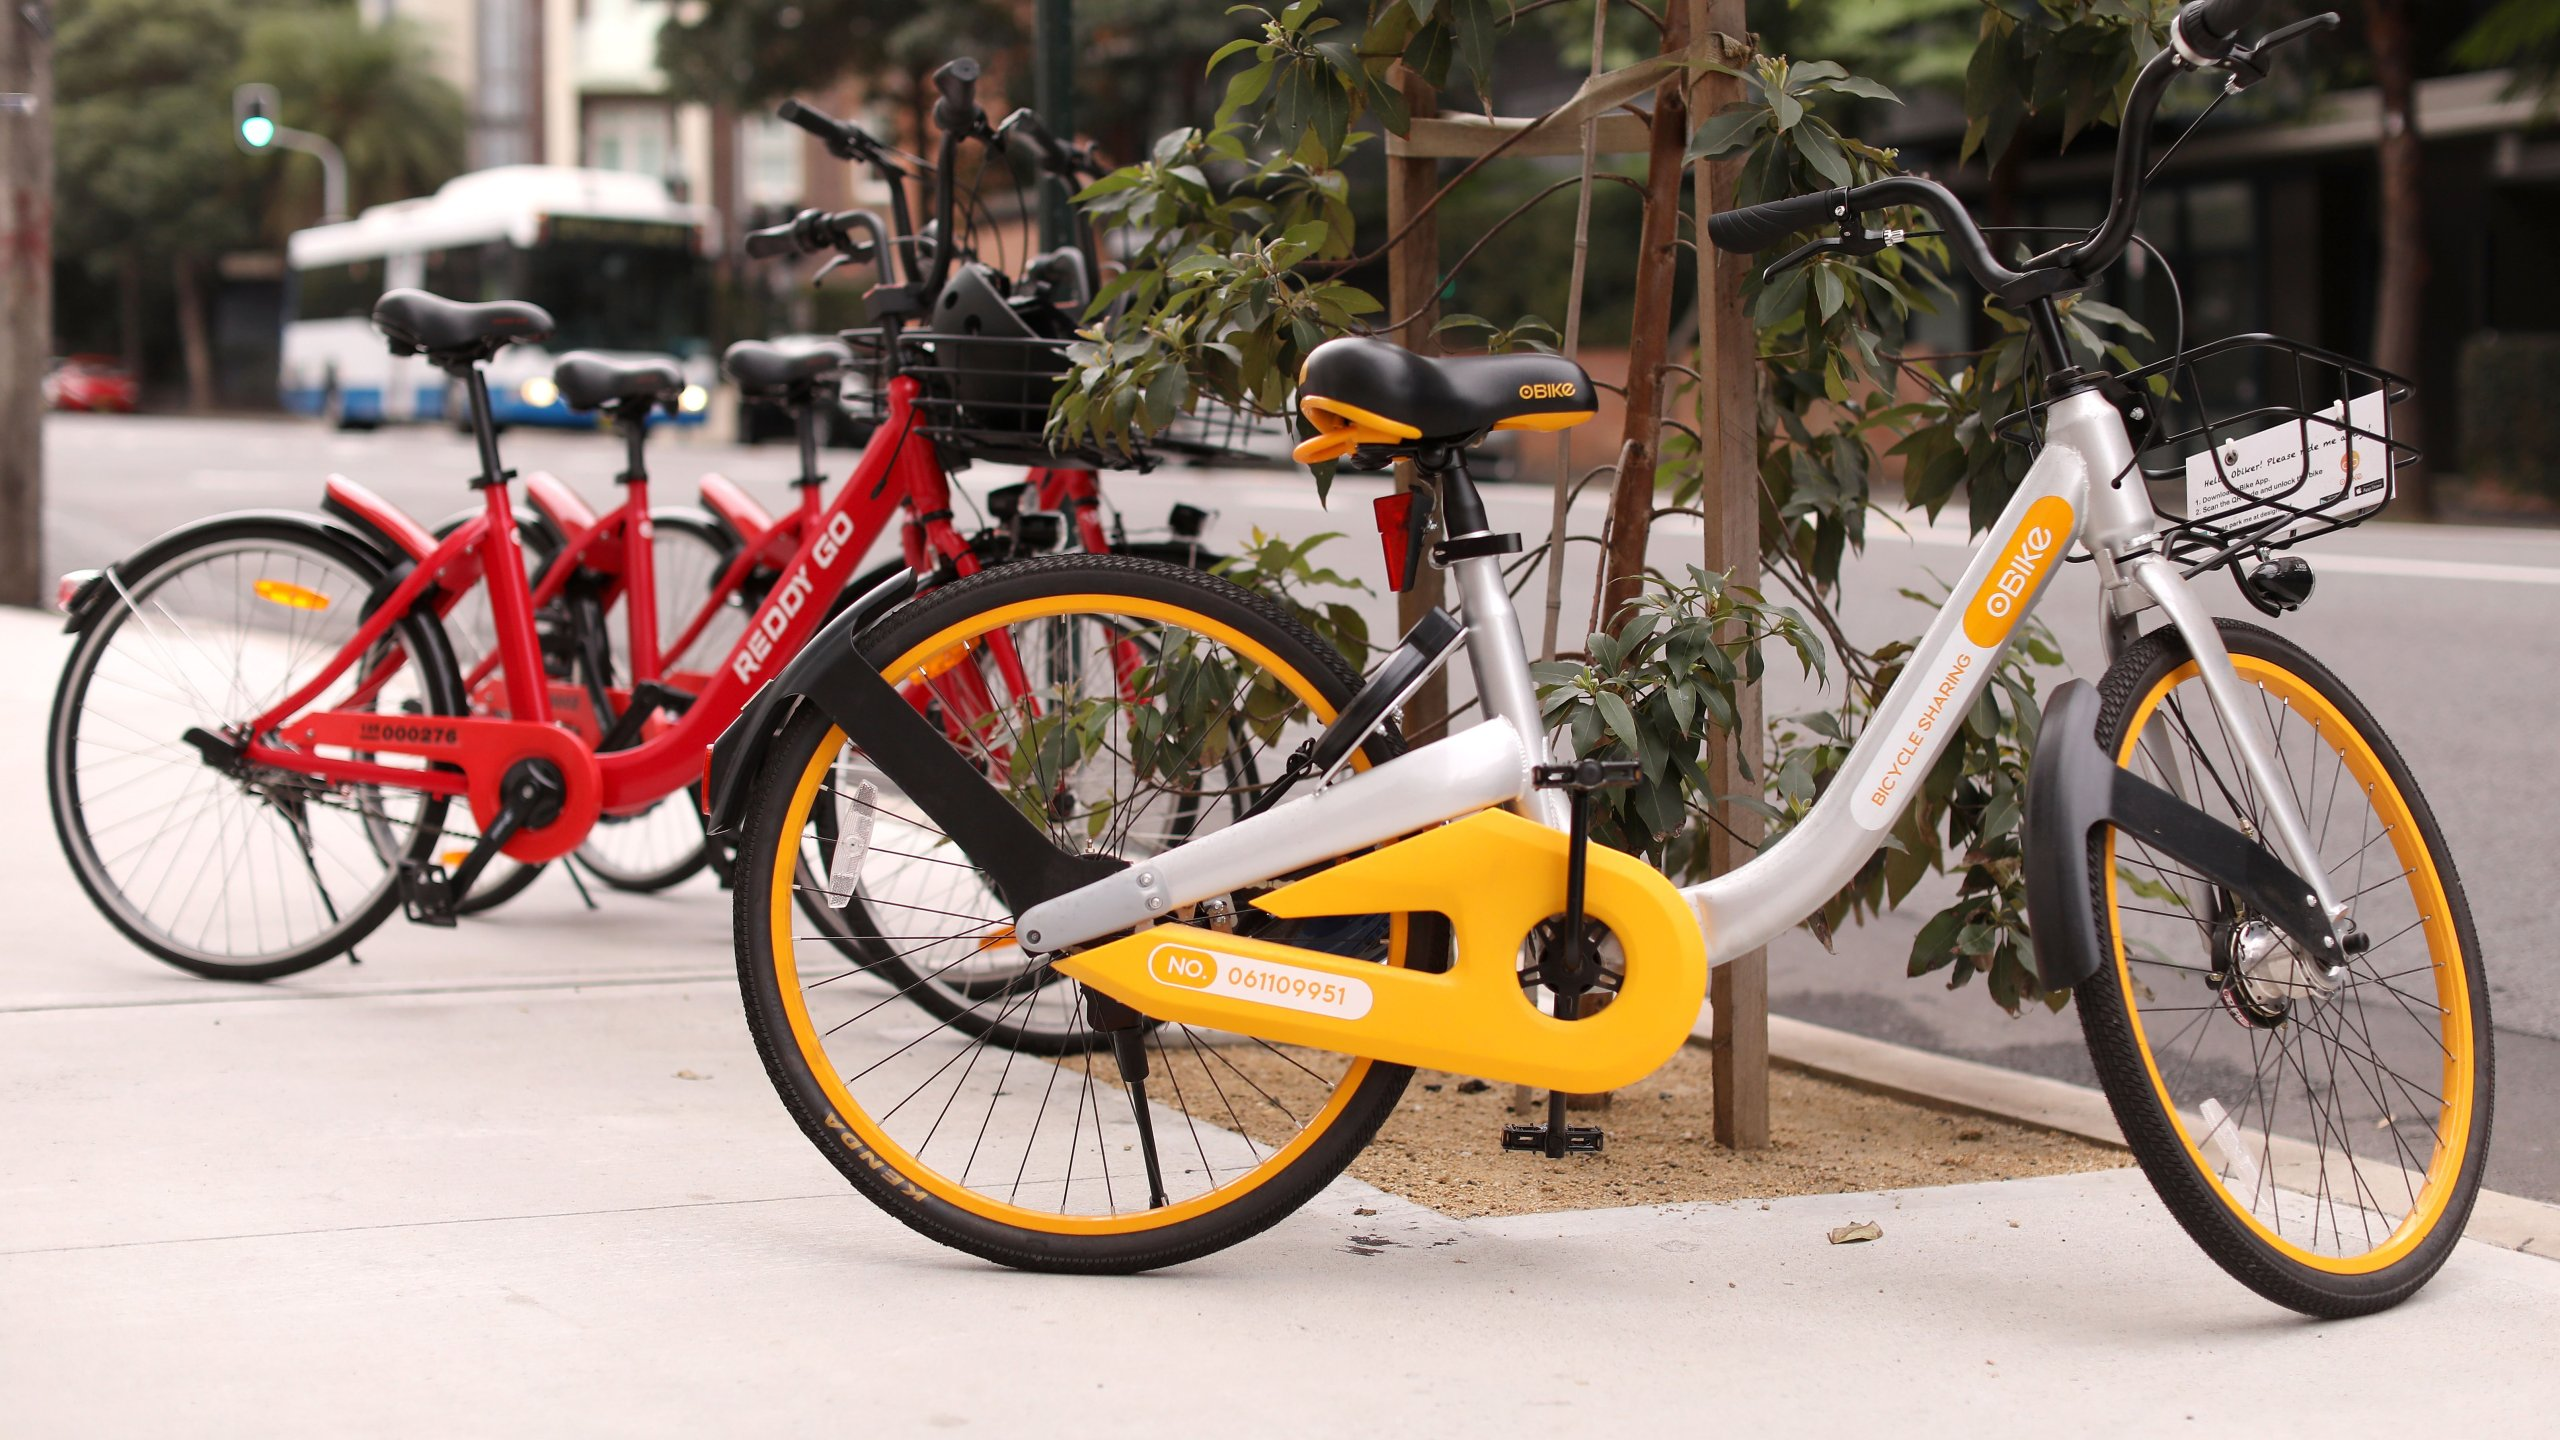 An O Bike and two Reddy Go bicycles are seen on August 15, 2017 in Sydney, Australia. New dockless bike sharing service including O Bike and Reddy Go have launched in Sydney, allowing commuters to rent and return bikes wherever they like via a smartphone app. (Photo by Mark Kolbe/Getty Images)